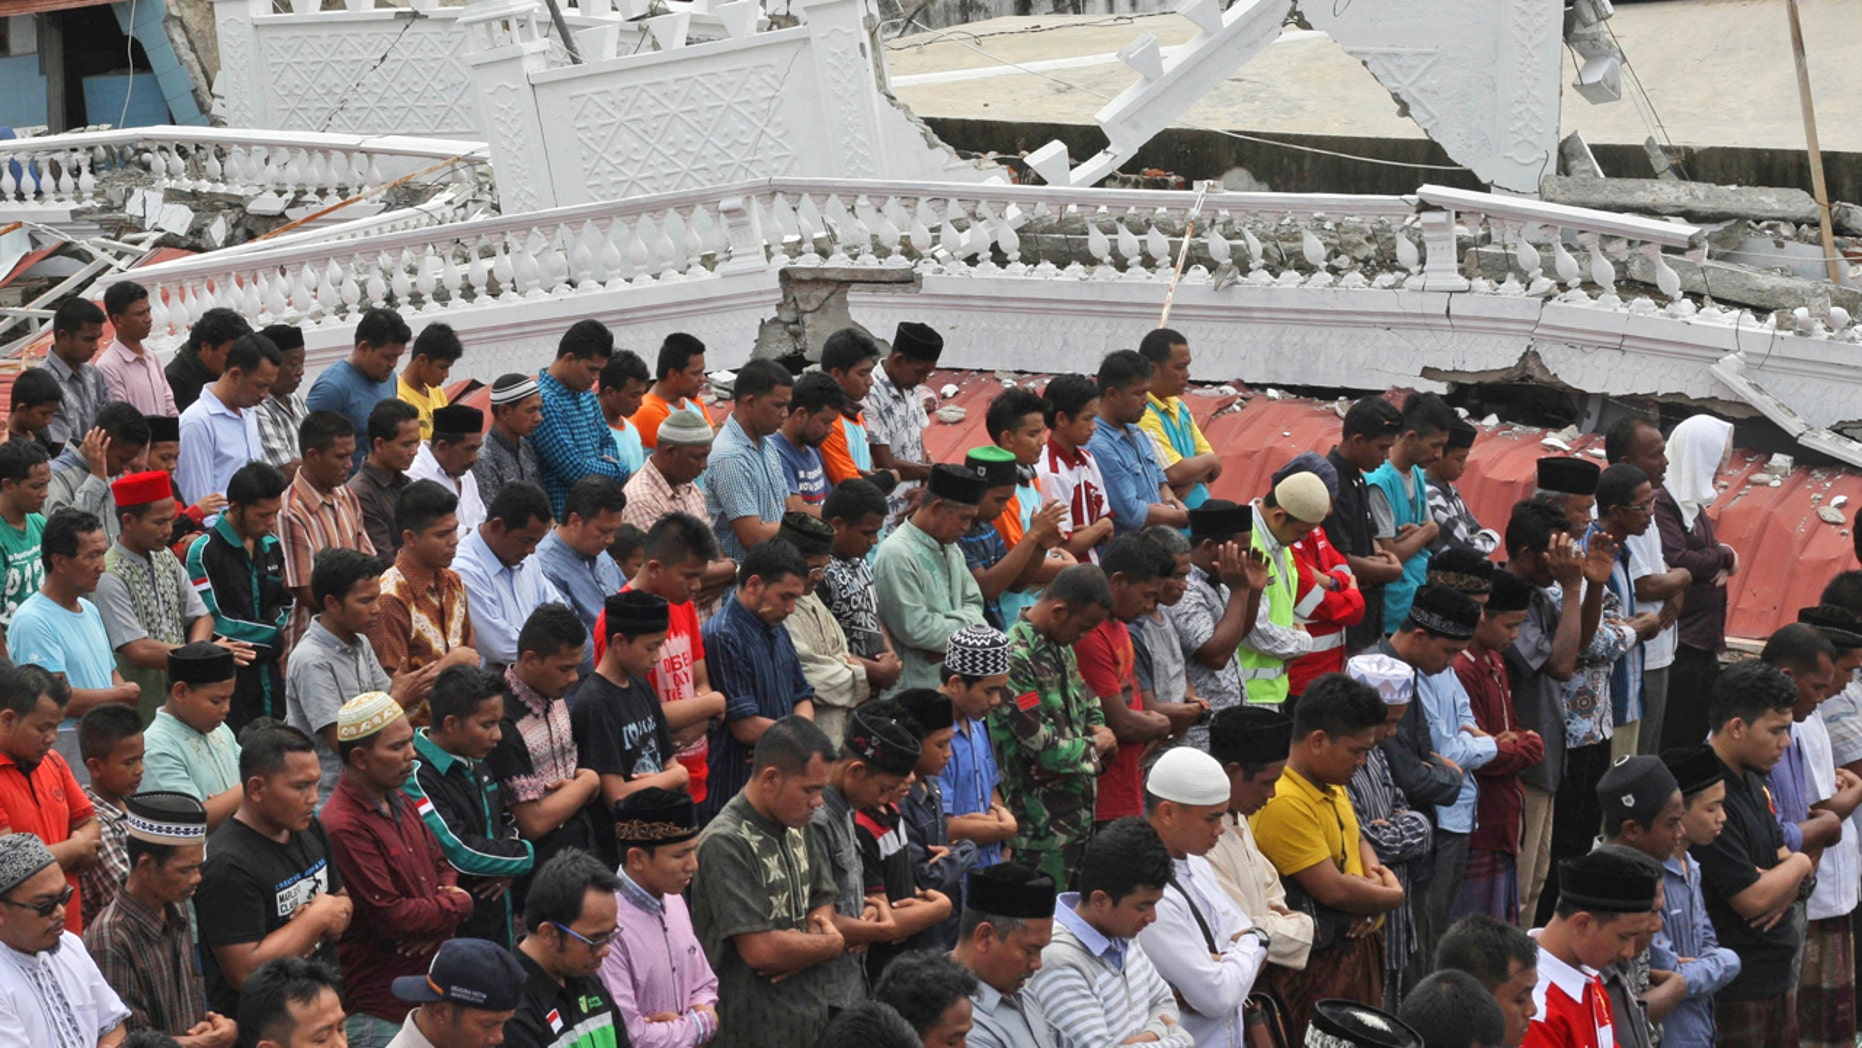 Survivors perform Friday prayer at a Jami Quba mosque which was severely damaged during Wednesday's earthquake in Tringgading, Aceh province, Indonesia, Friday, Dec. 9, 2016.